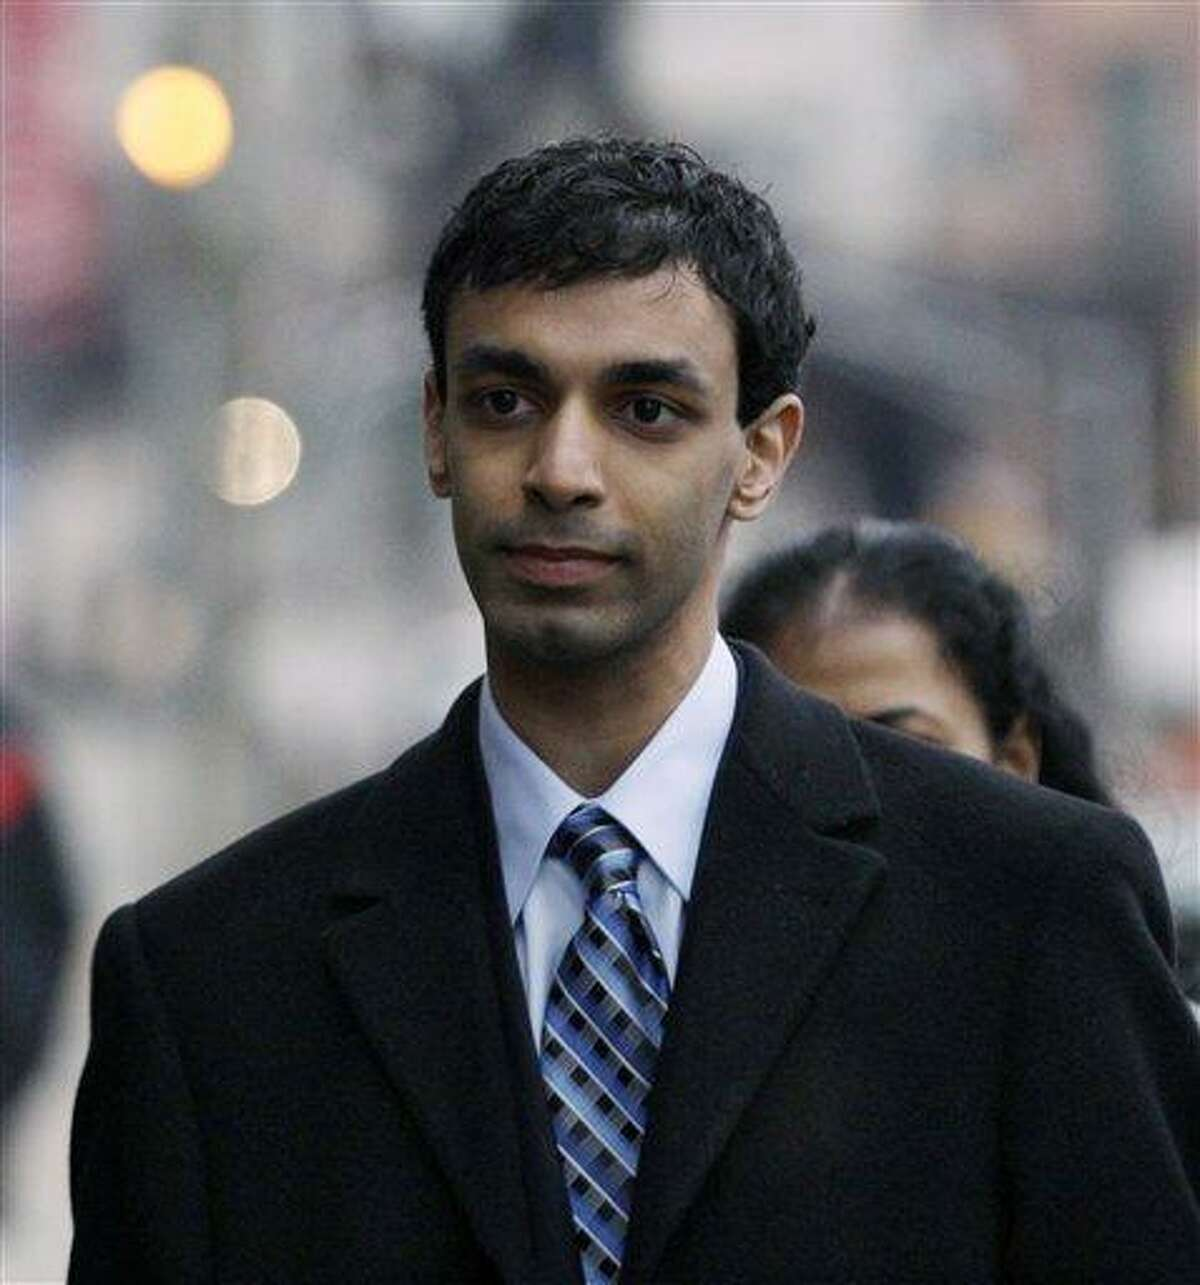 Former Rutgers University student, Dharun Ravi, arrives for the opening arguments at his trial in New Brunswick, N.J., Friday, Feb. 24, 2012. A prosecutor and defense lawyer will make their initial pitches to jurors Friday. Associated Press